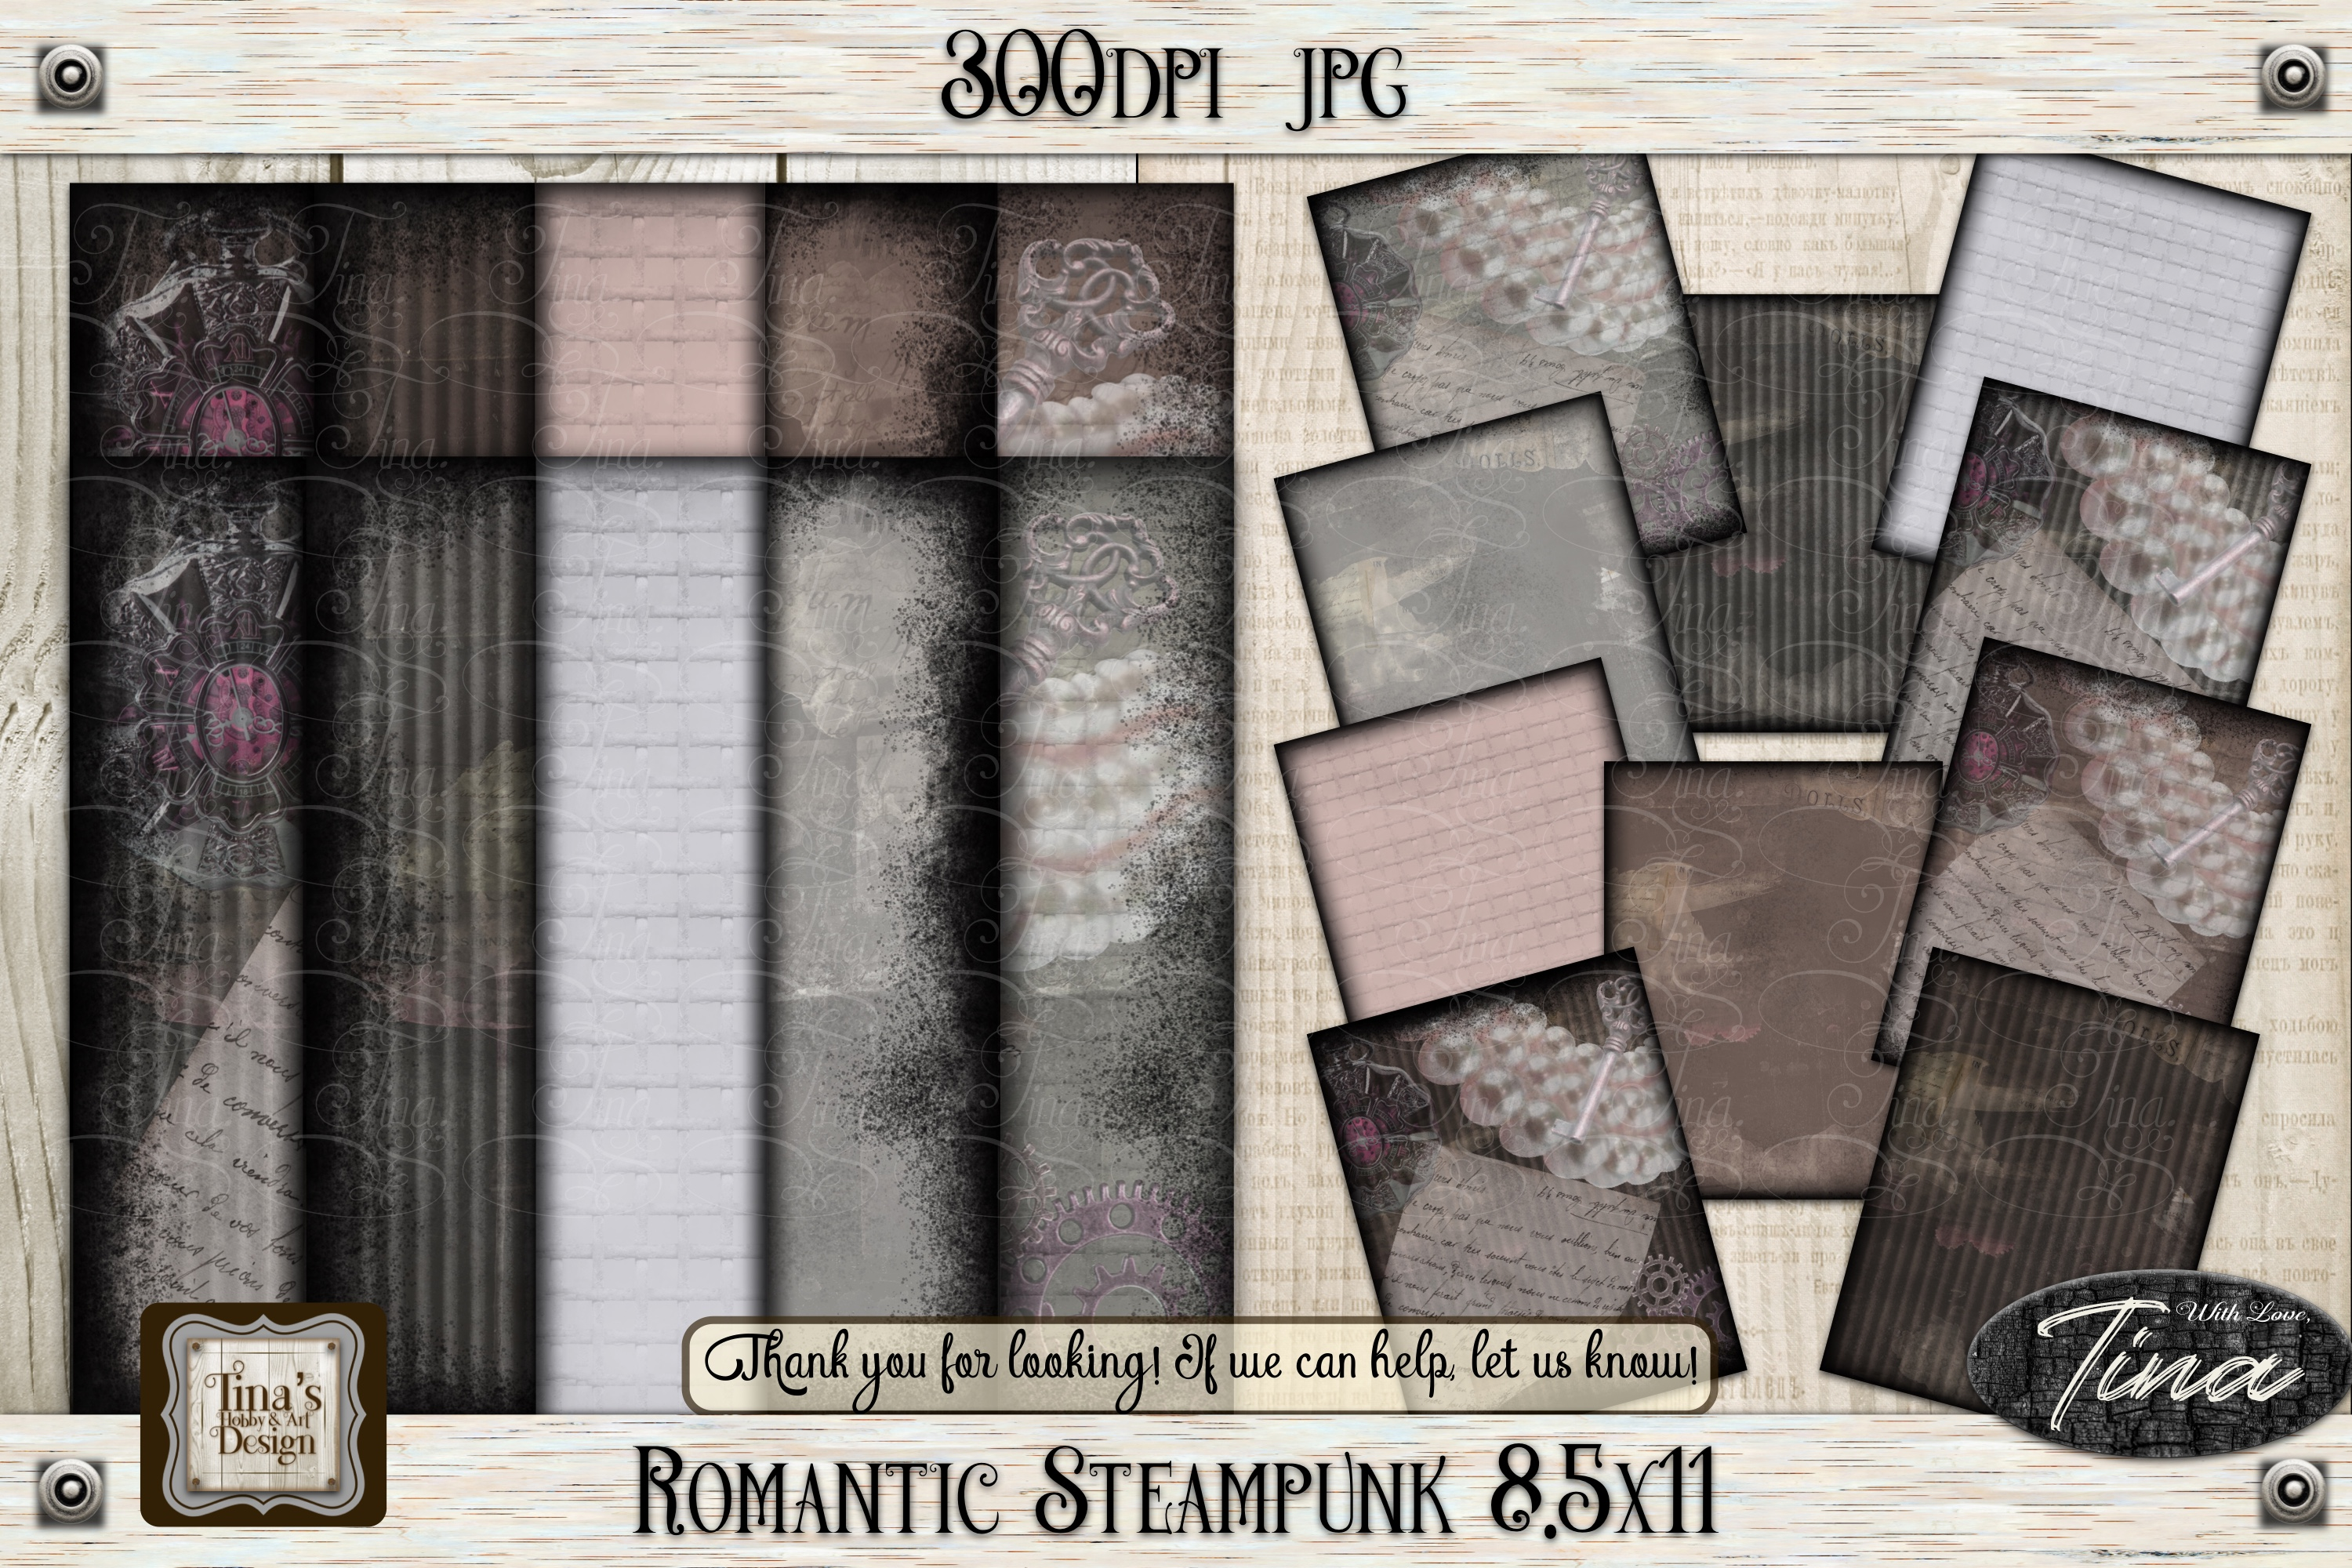 Romantic Steampunk Tags 2 Collage Mauve Grunge 101918RST2 example image 2